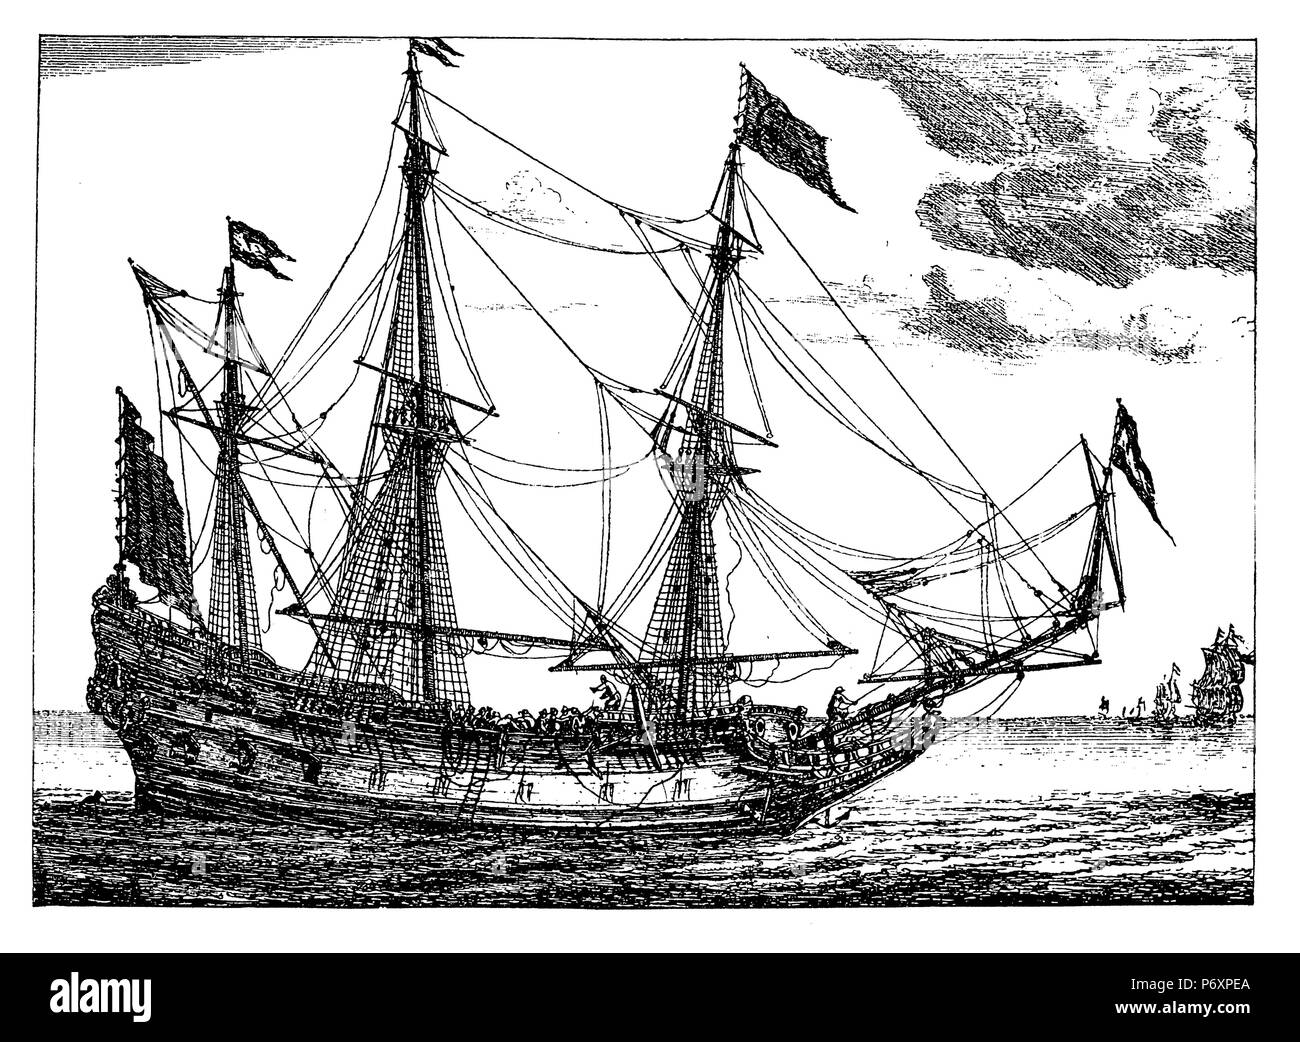 A Dutch sailing ship (Straetvarder) in the 17th century. After a copperplate engraving by Reinier Zeemann, - Stock Image